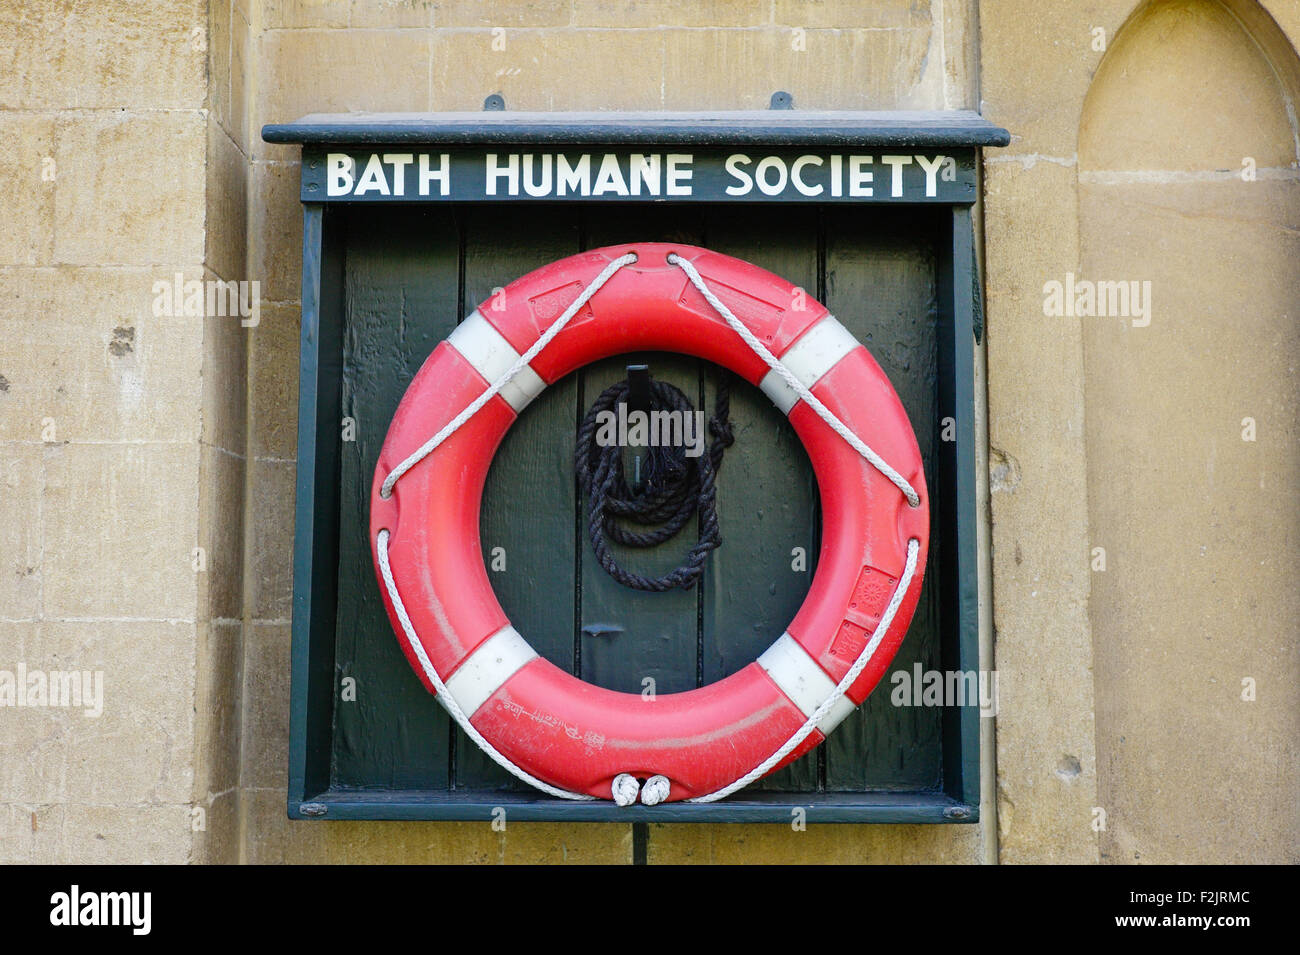 LIfe belt by a canal in Bath UK supplied by the Bath Humane Society - Stock Image